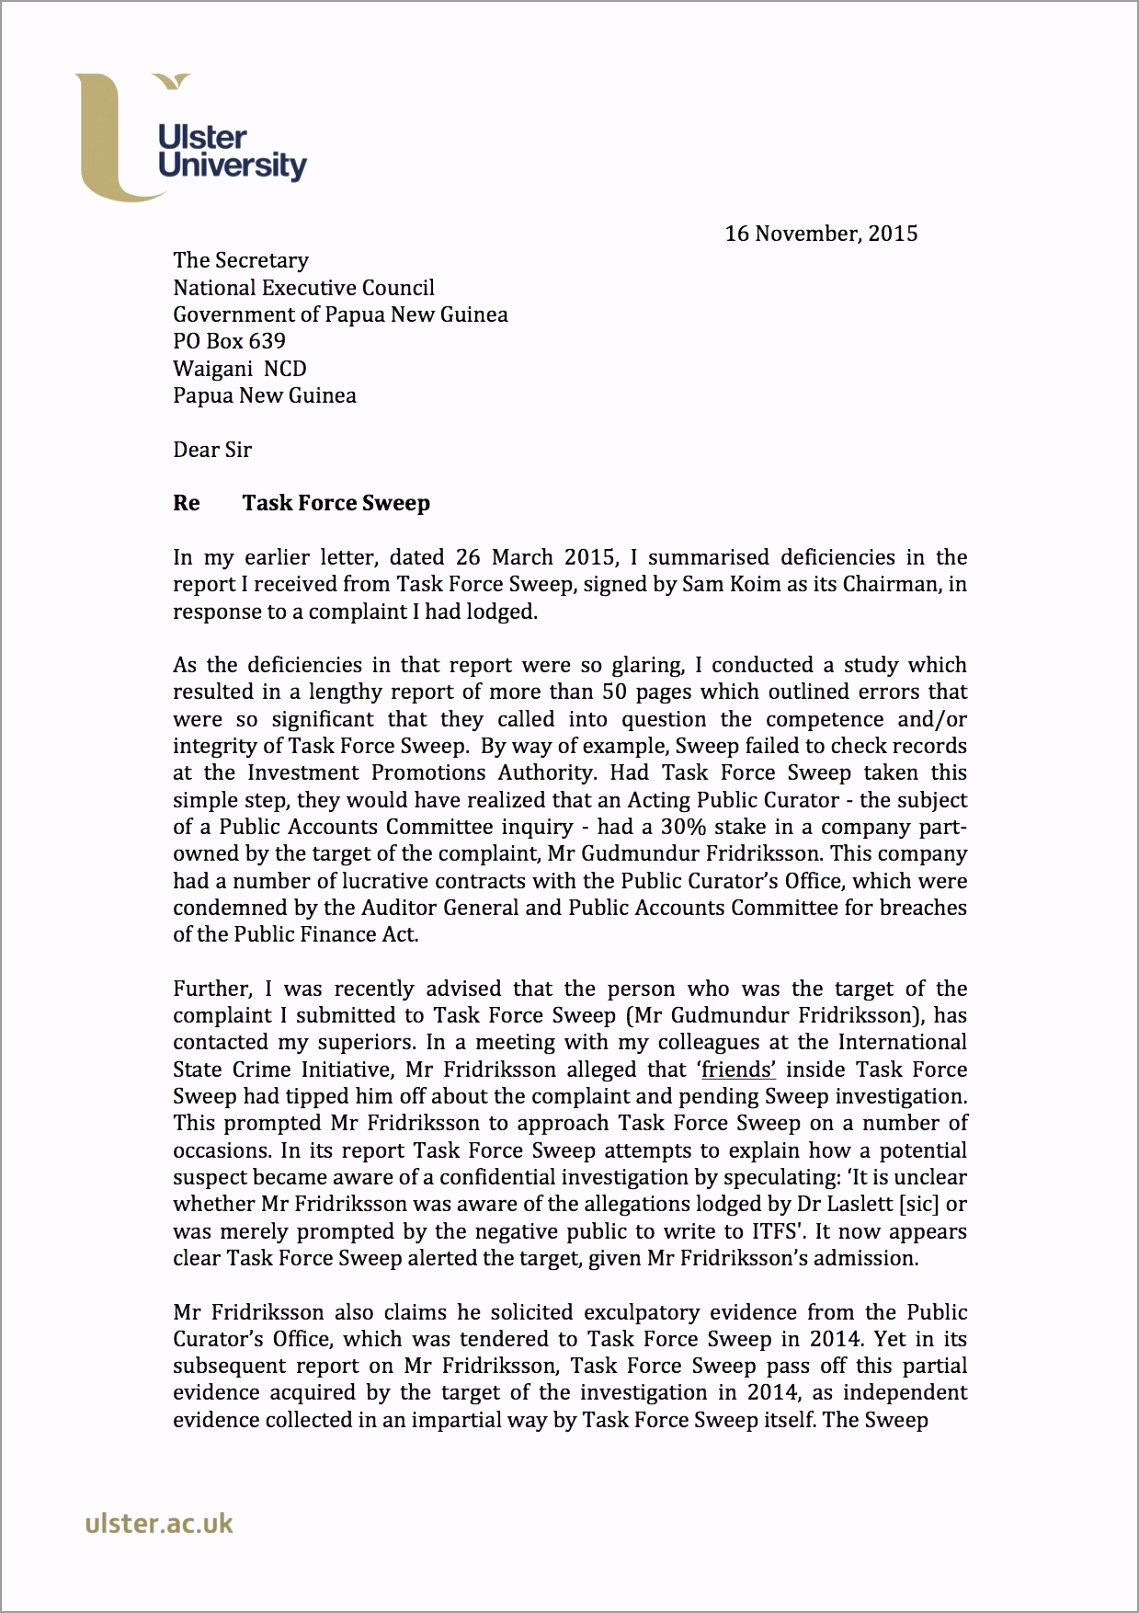 ist page letter to NEC 16 November 2015 yuttr